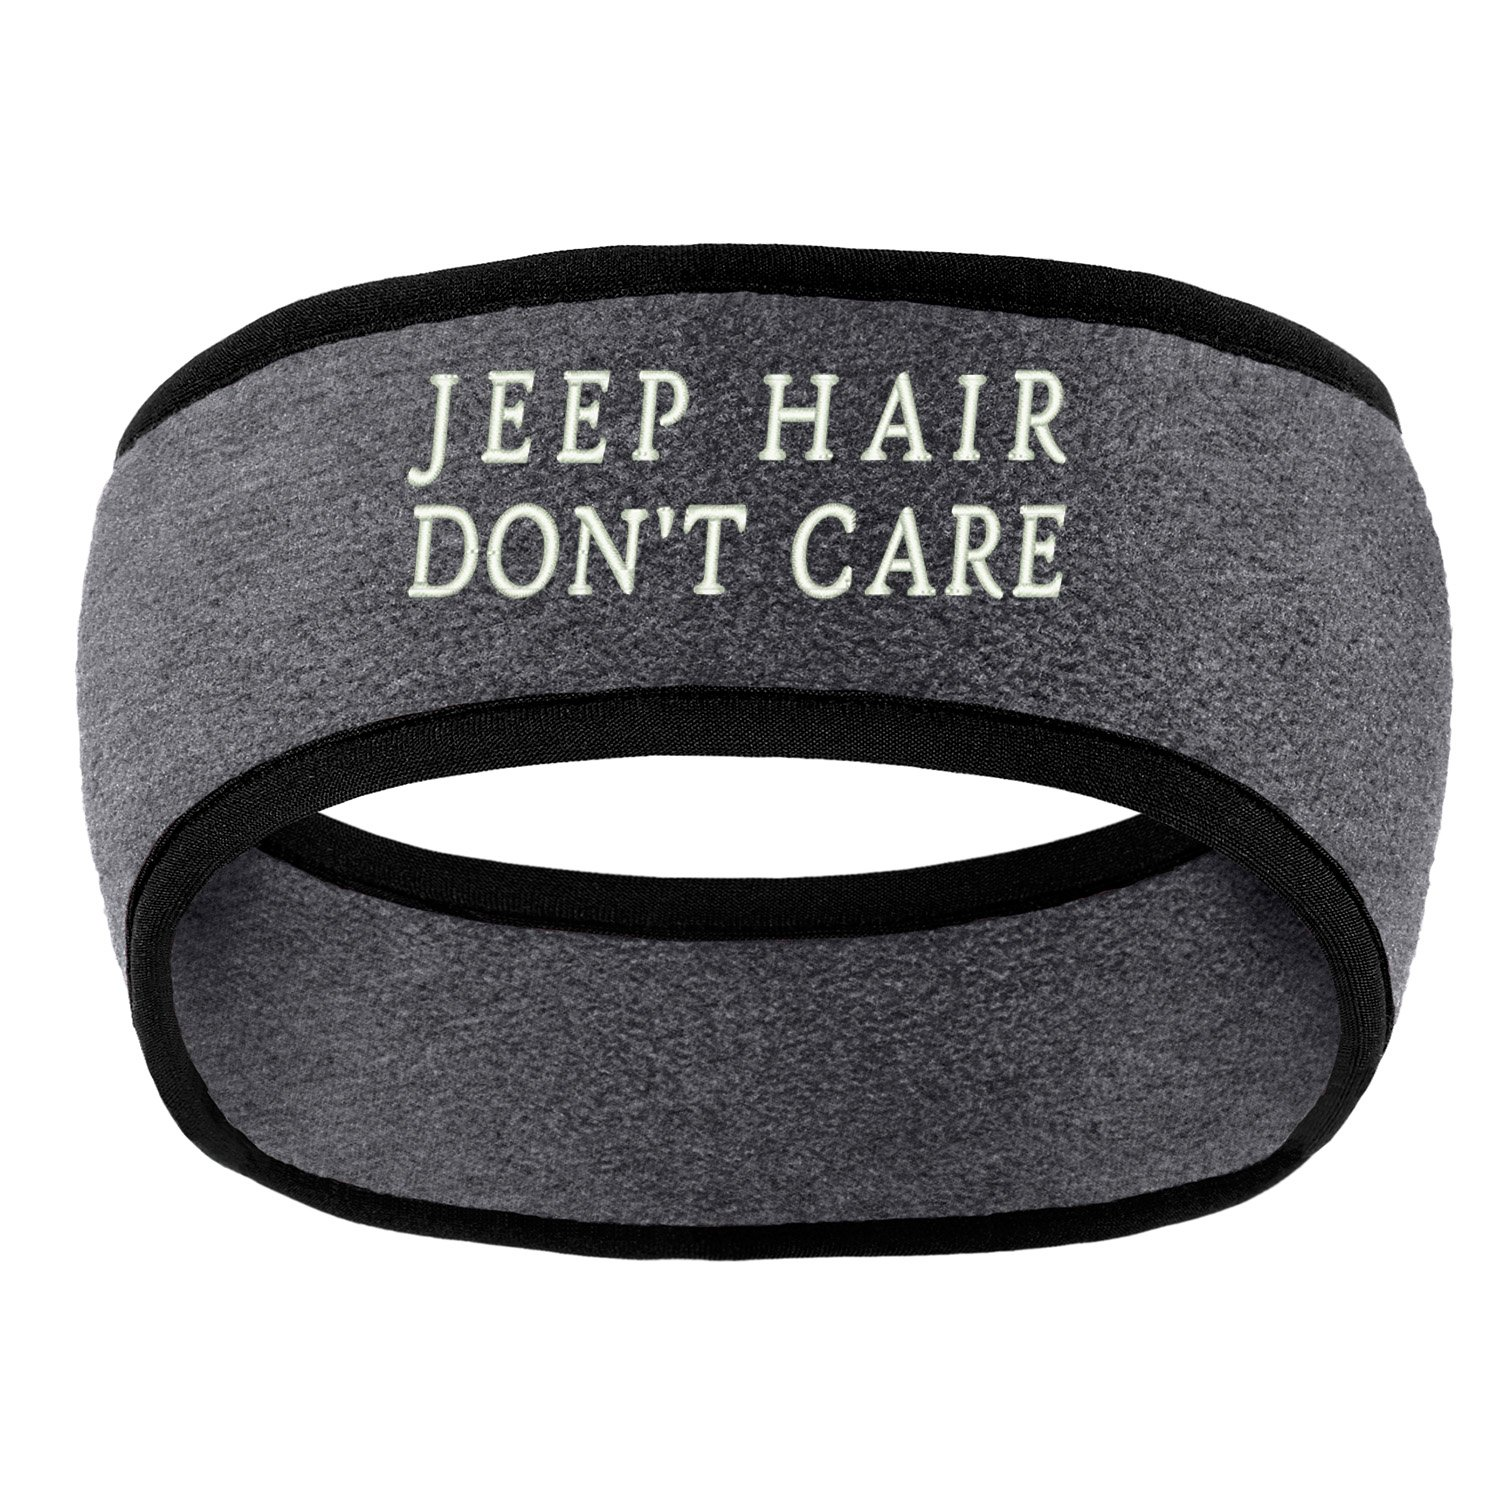 Trendy Apparel Shop Hair Don't Care Embroidered Soft Sweat Head Band